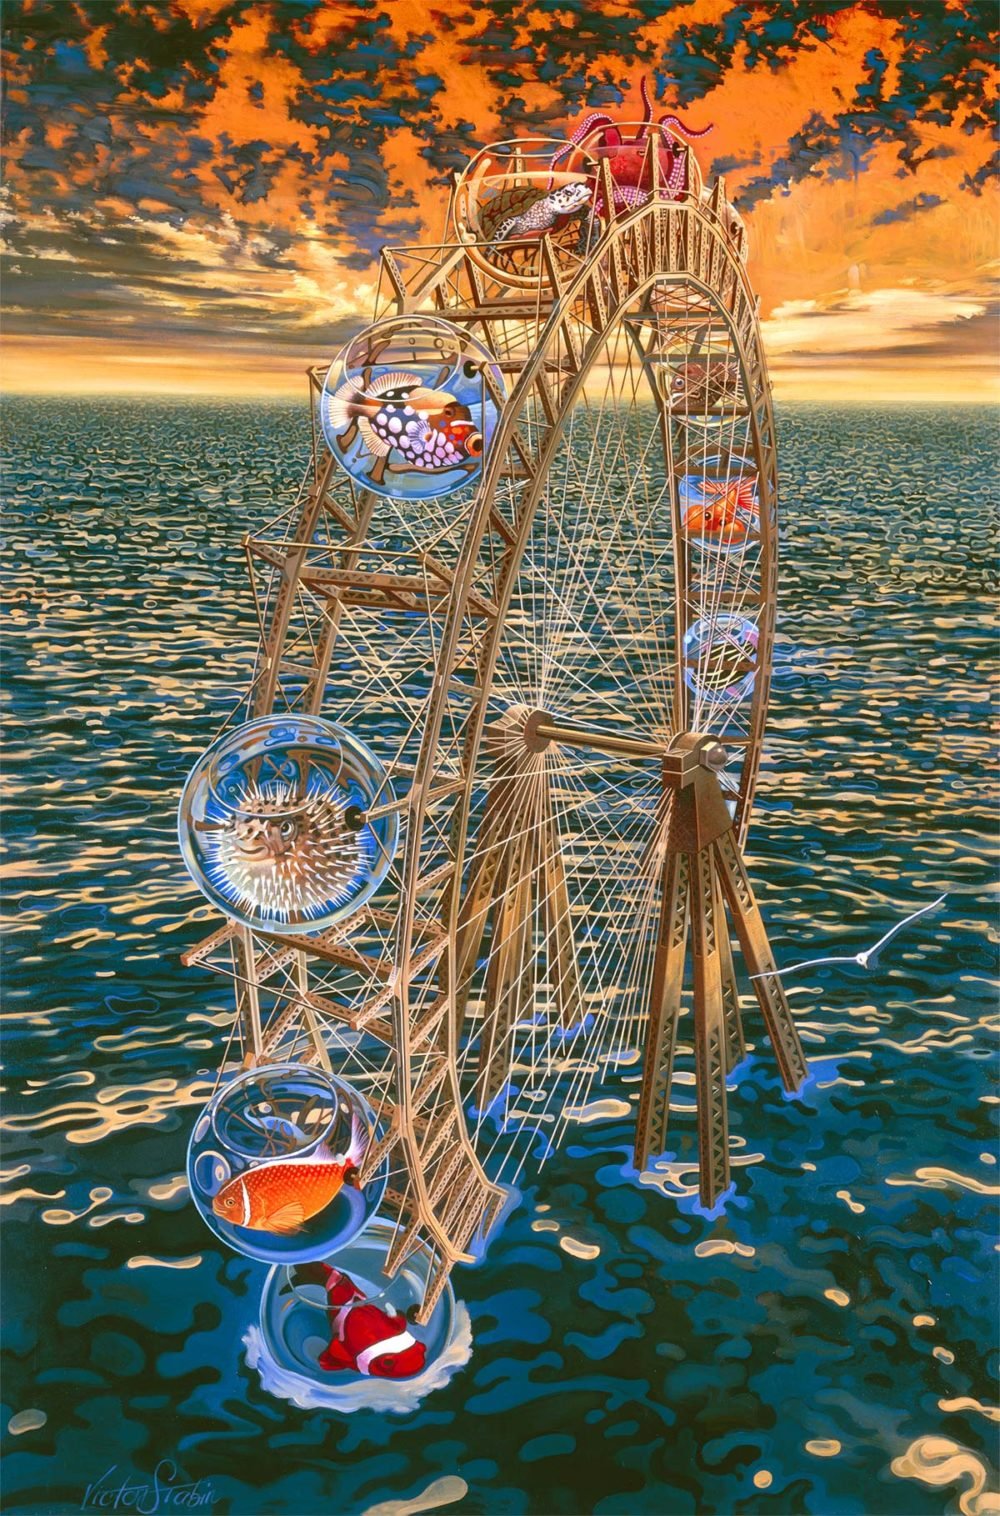 Fish Ferris Wheel Painting by Victor Stabin